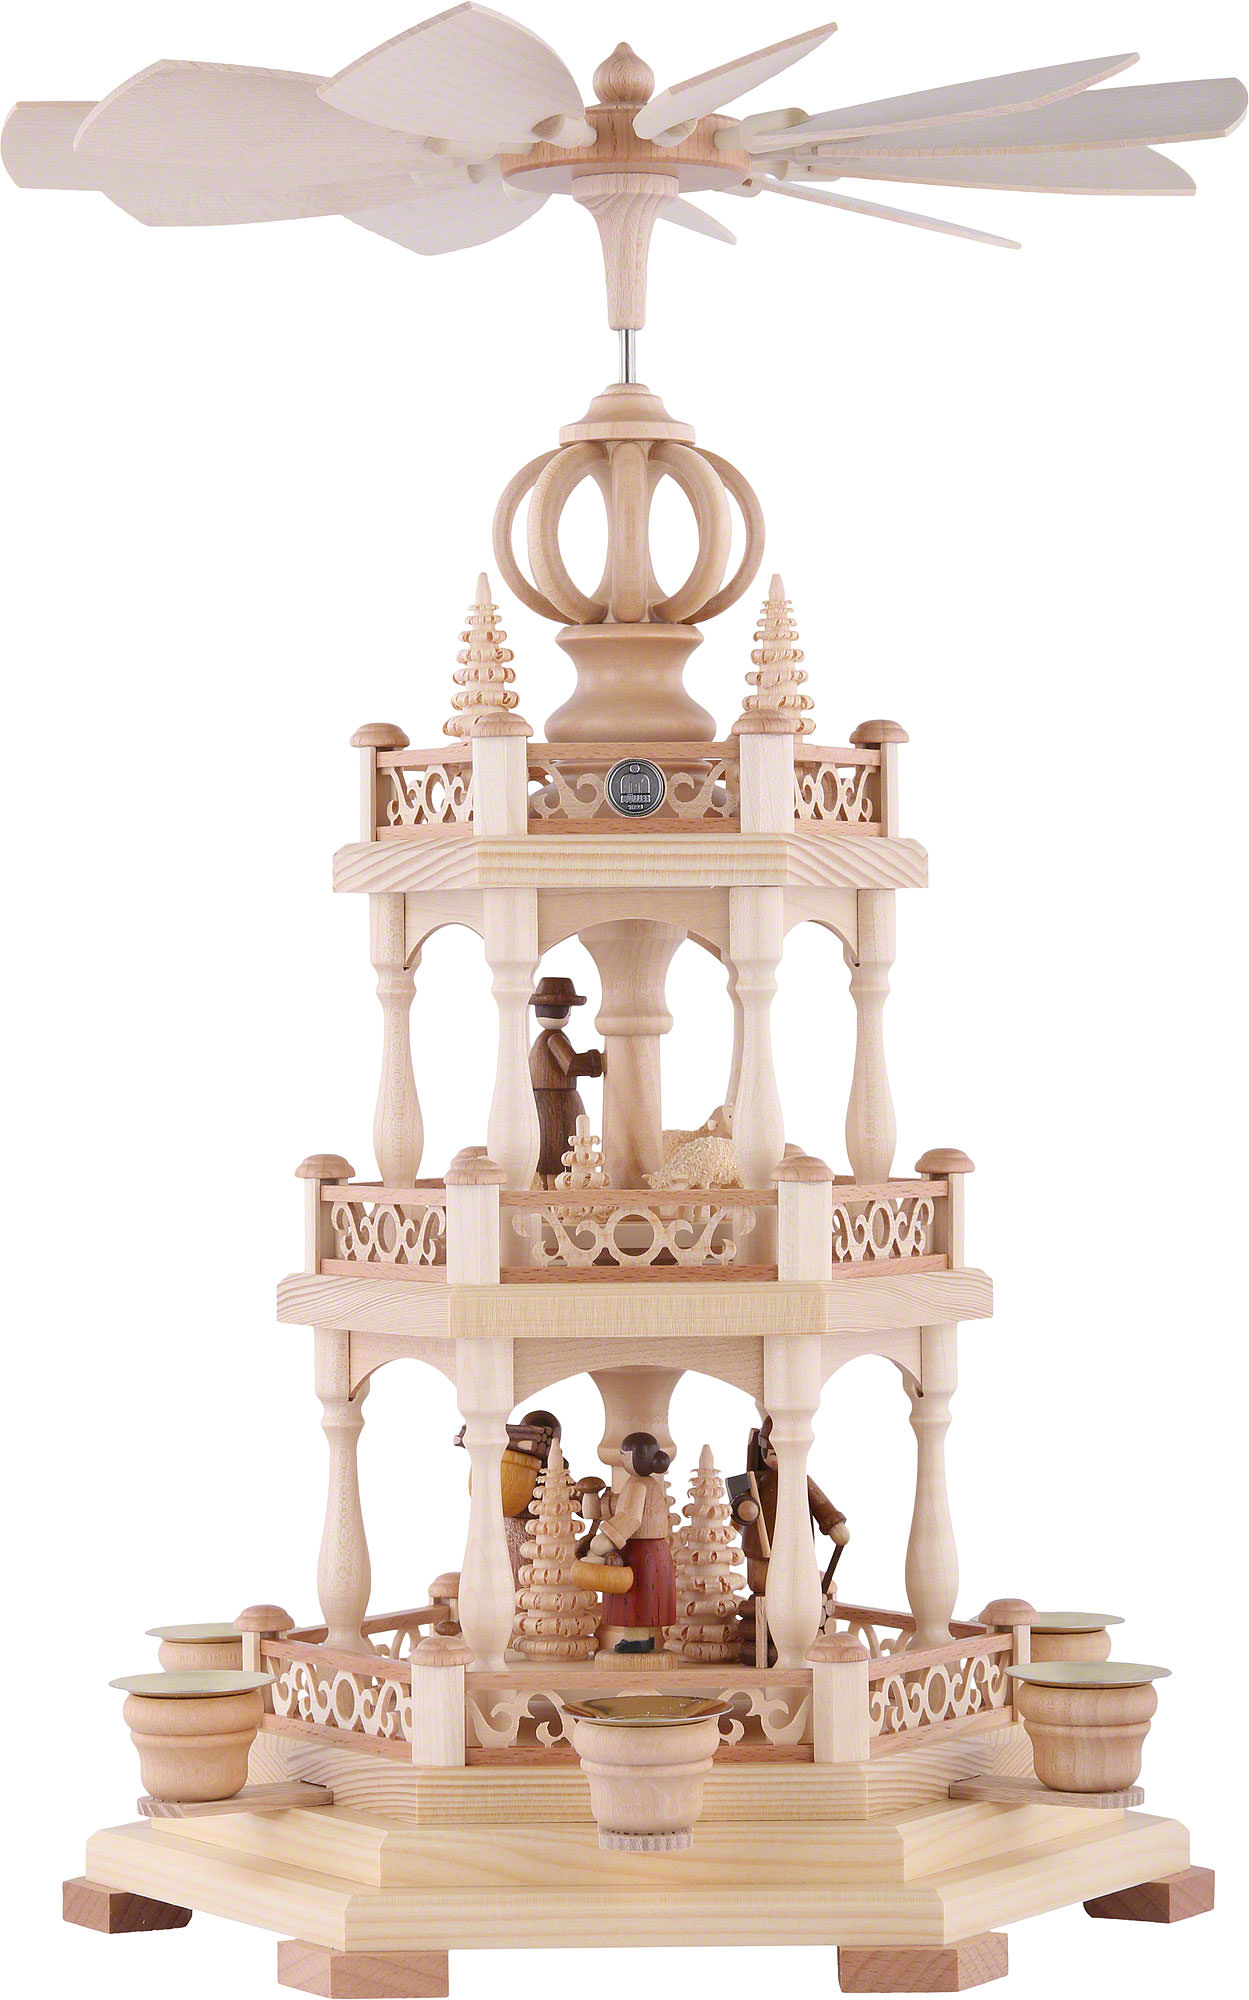 Christmas Pyramid.3 Tier Christmas Pyramid Forest Scene 45 Cm 18 Inch